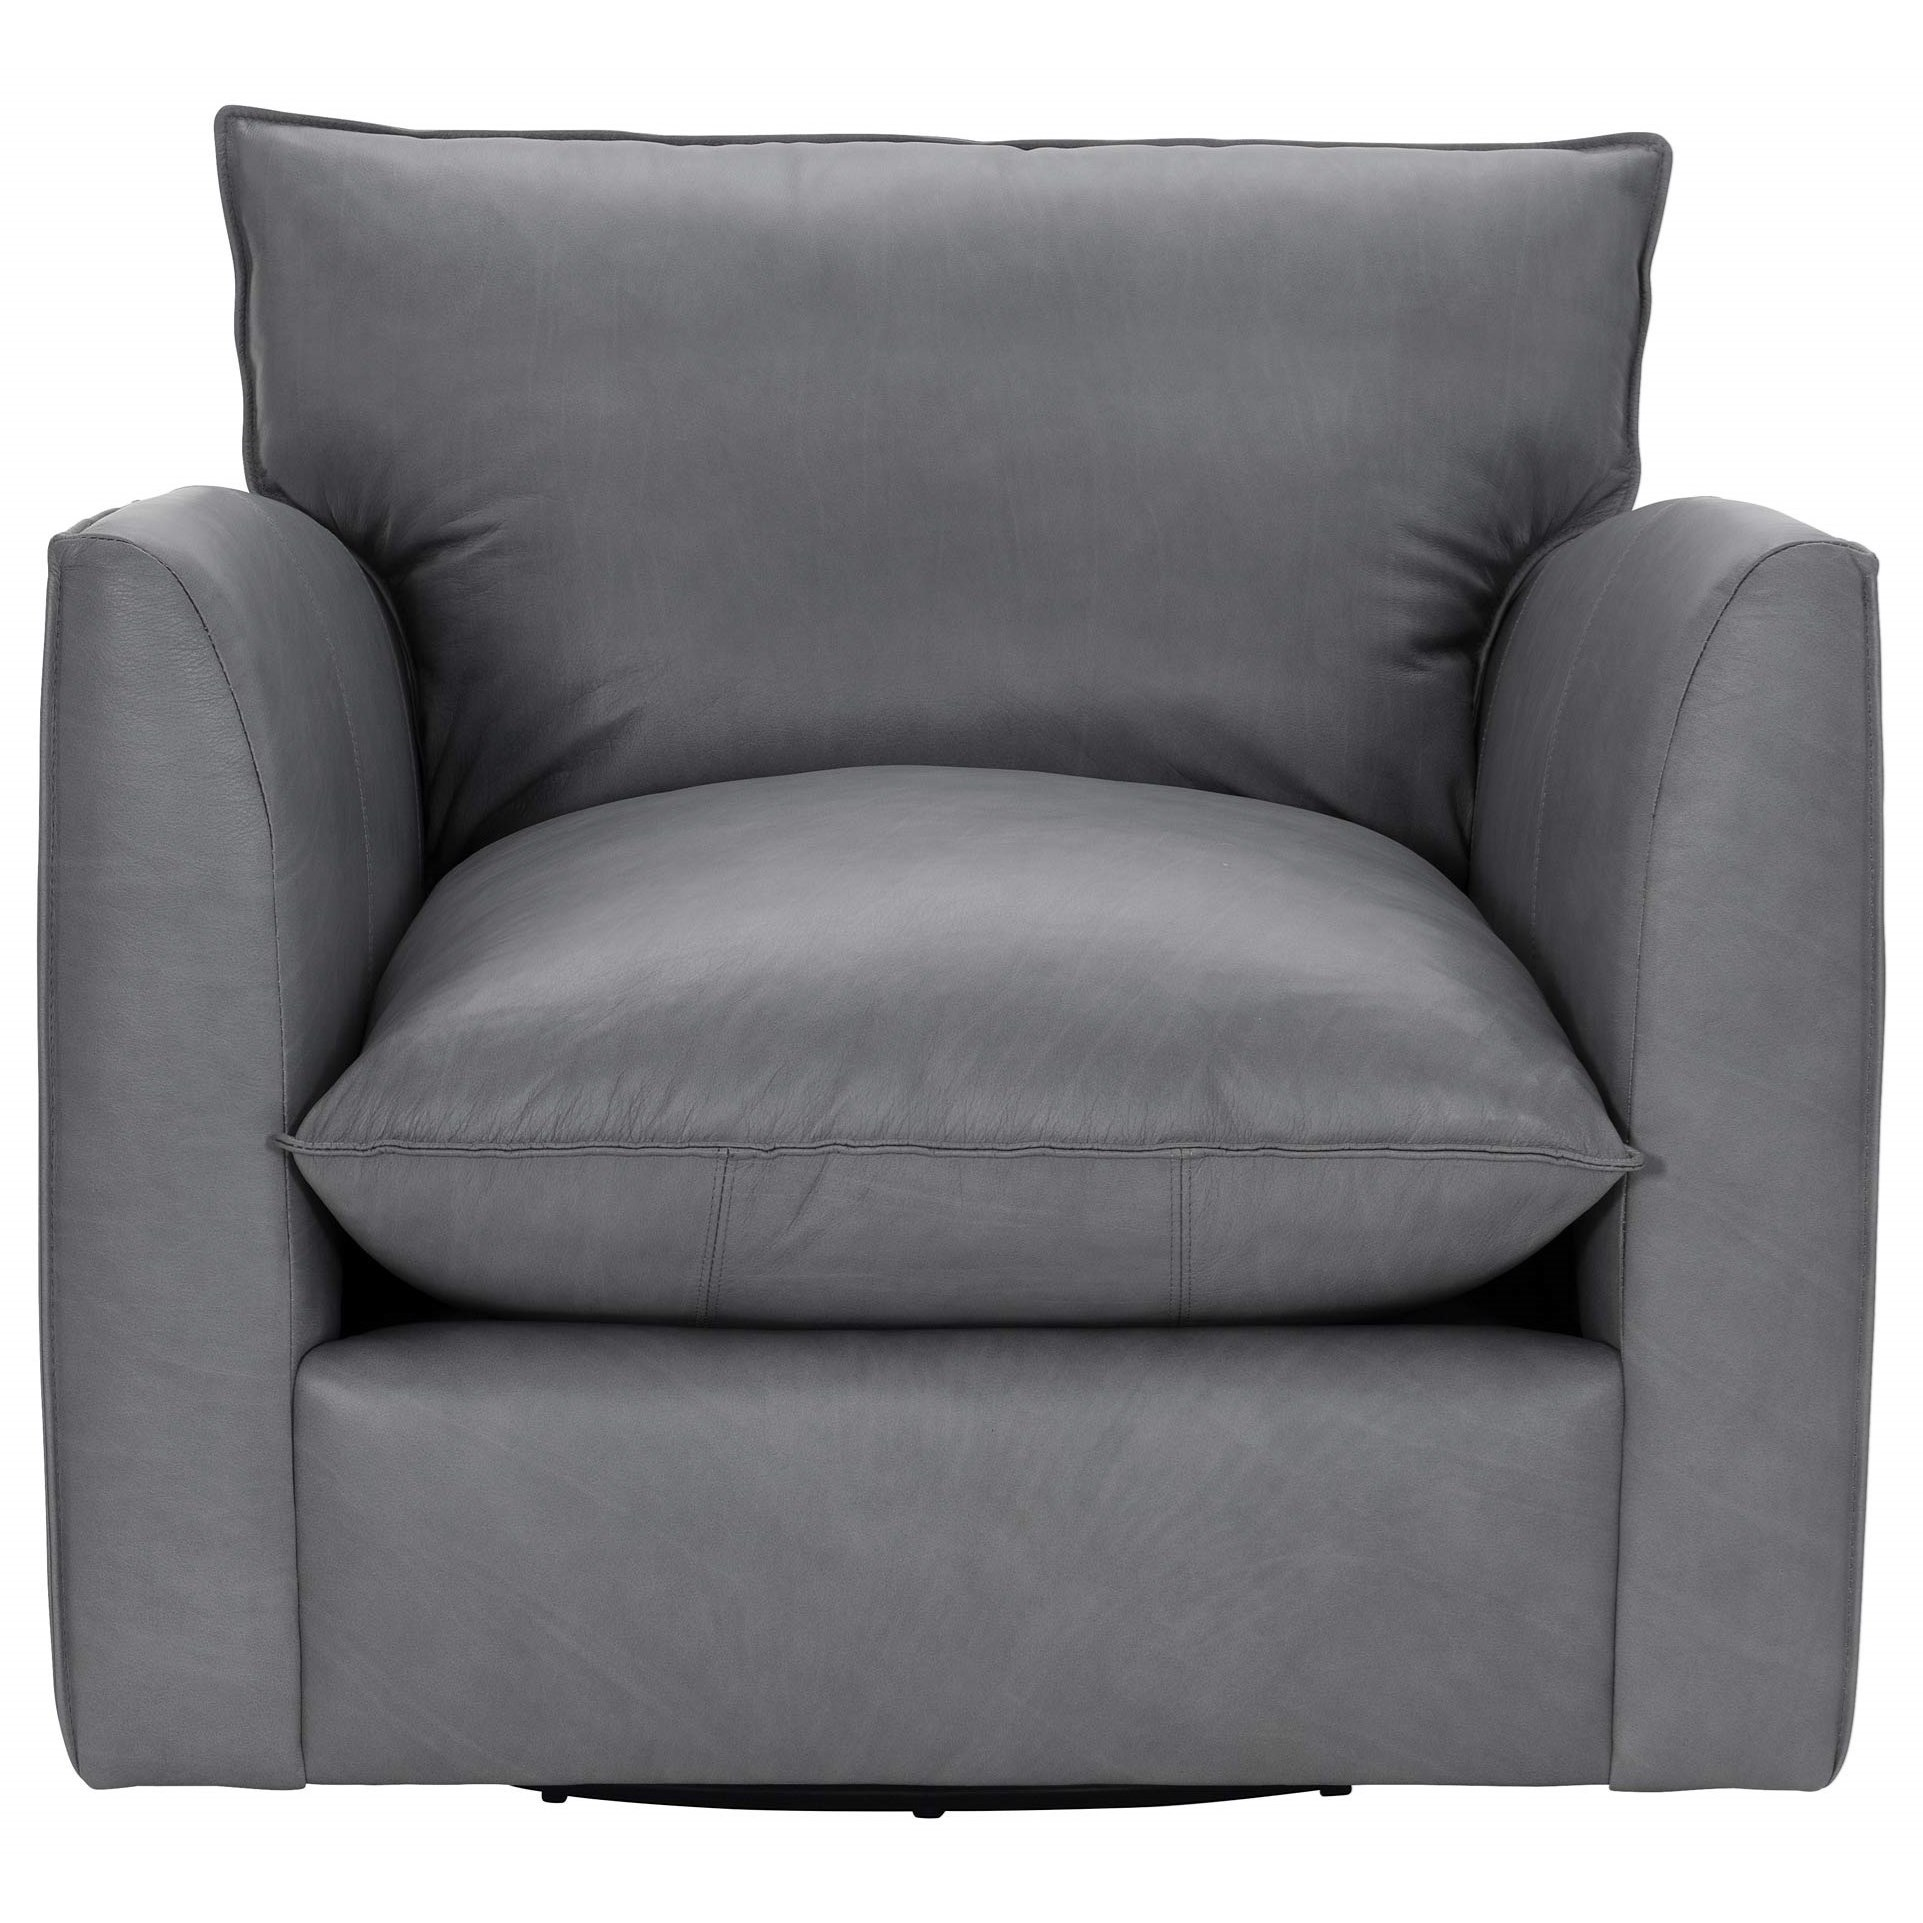 Ally Swivel Chair at Williams & Kay